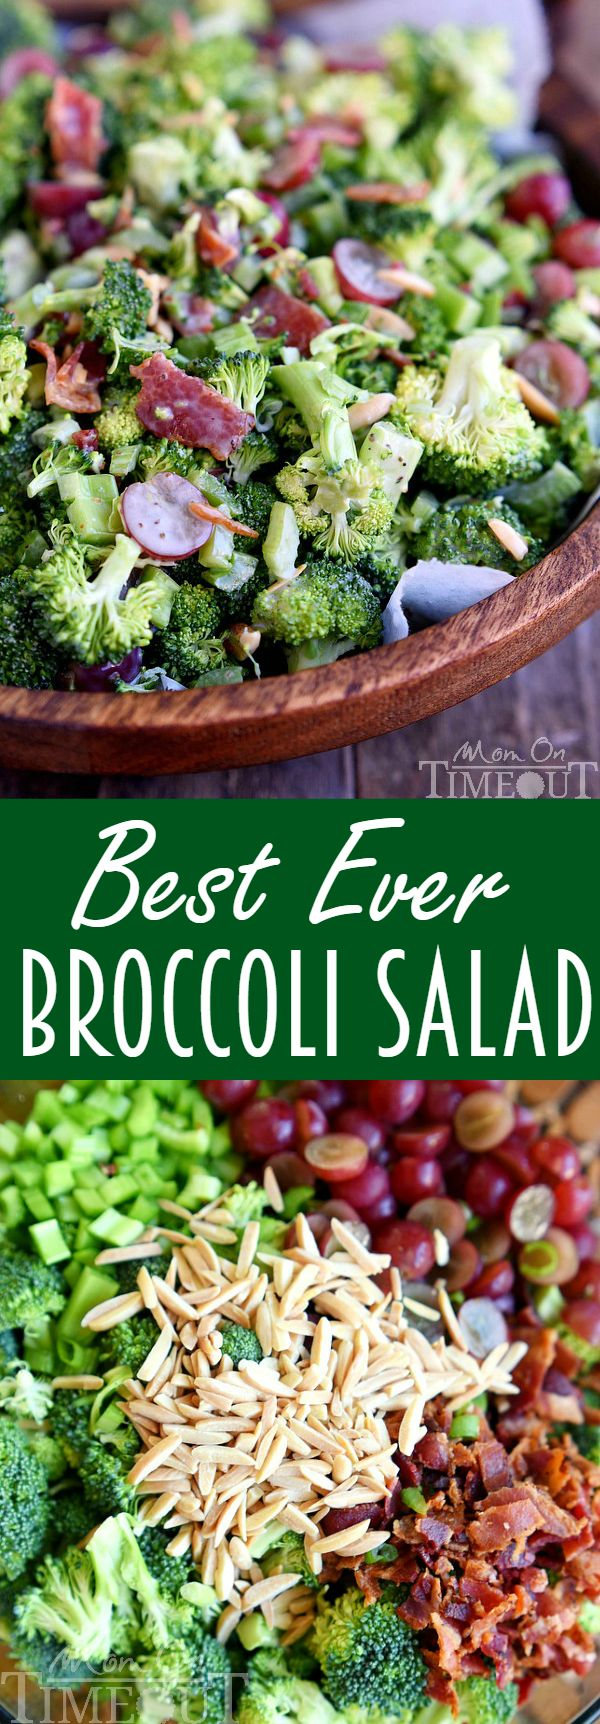 Don't believe me? Just try it! This Best Ever Broccoli Salad recipe is bursting with flavor! Packed full of broccoli, bacon, grapes, almonds and more - every bite is delicious! | MomOnTimeout.com